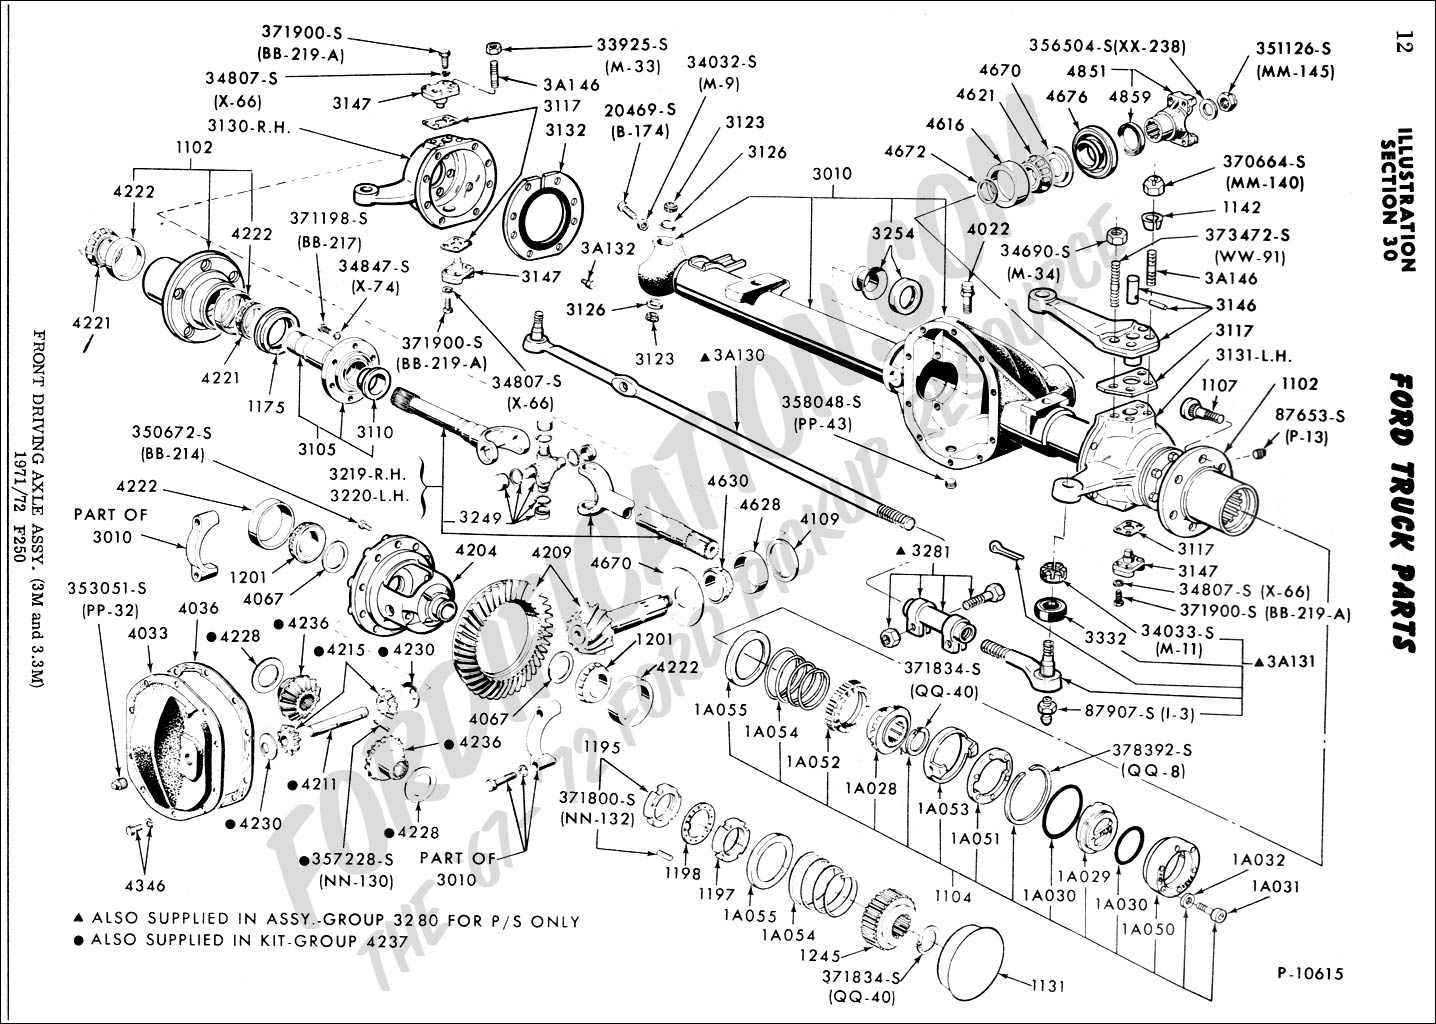 2000 ford f250 super duty 4x4 front axle diagram with 1996 Ford F-350  Wiring Diagram 1995 Ford F-350 Wiring Diagram